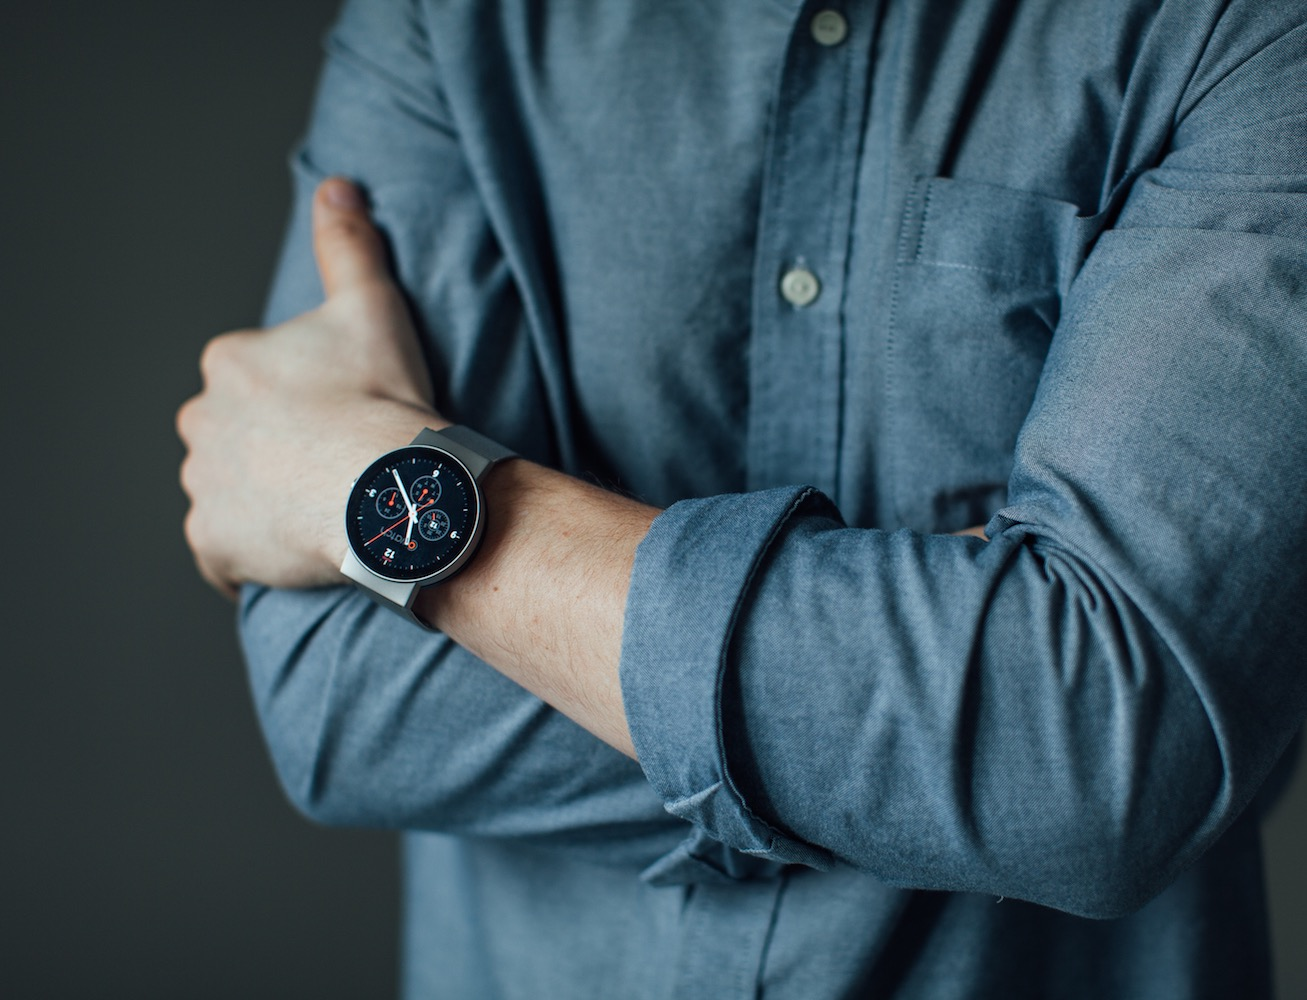 CoWatch – The Most Affordable High-End Smartwatch